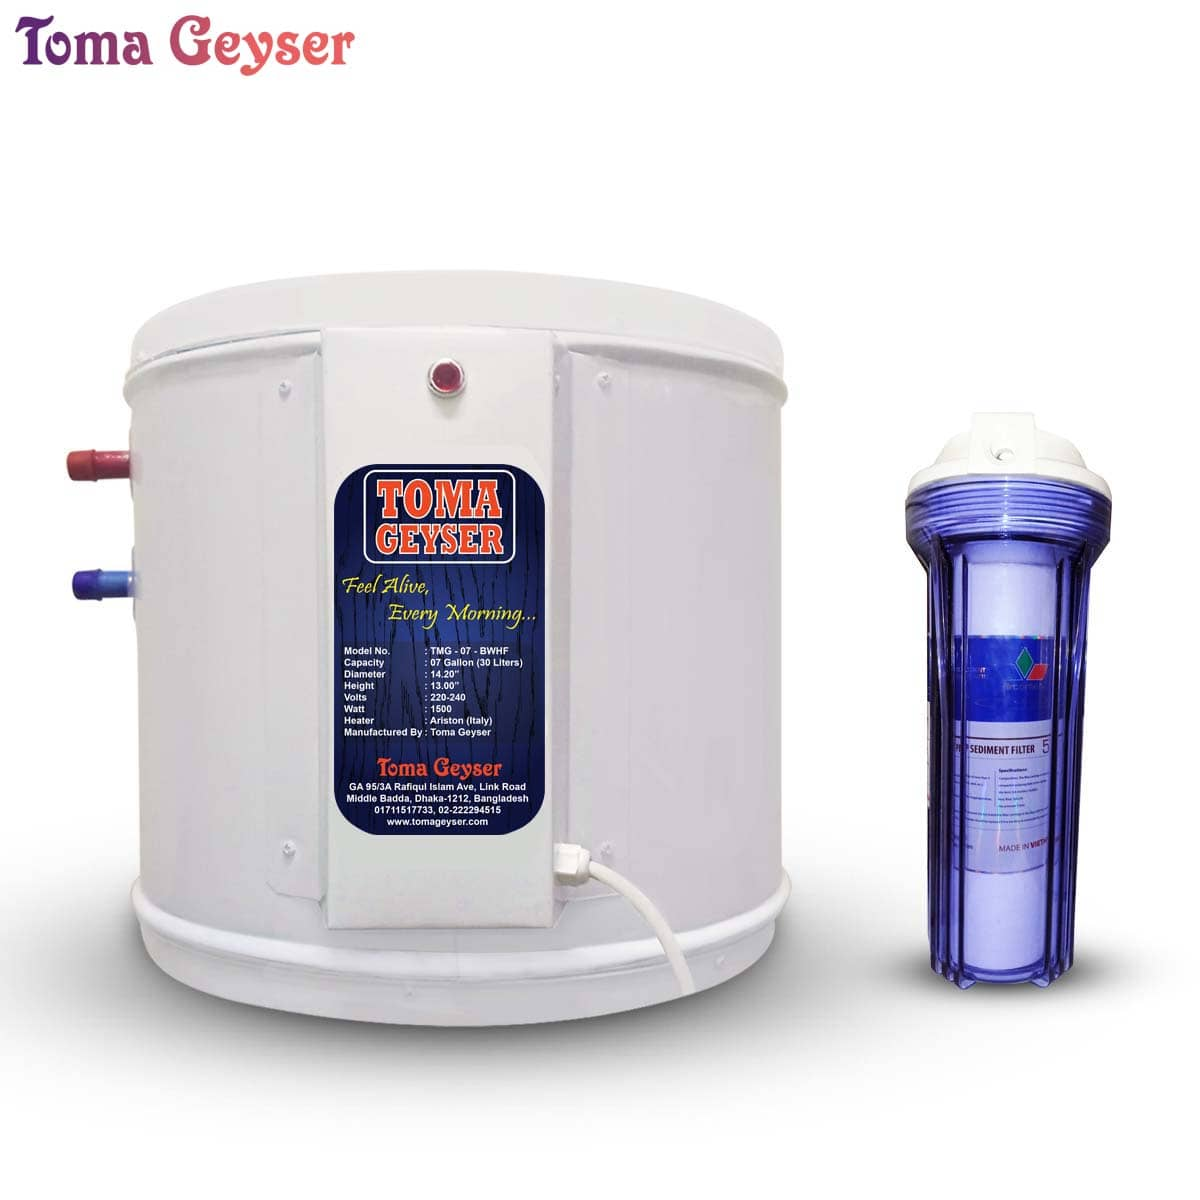 Toma Geyser 07 Gallon Automatic Electric Water Heater With Safety Filter Geyser